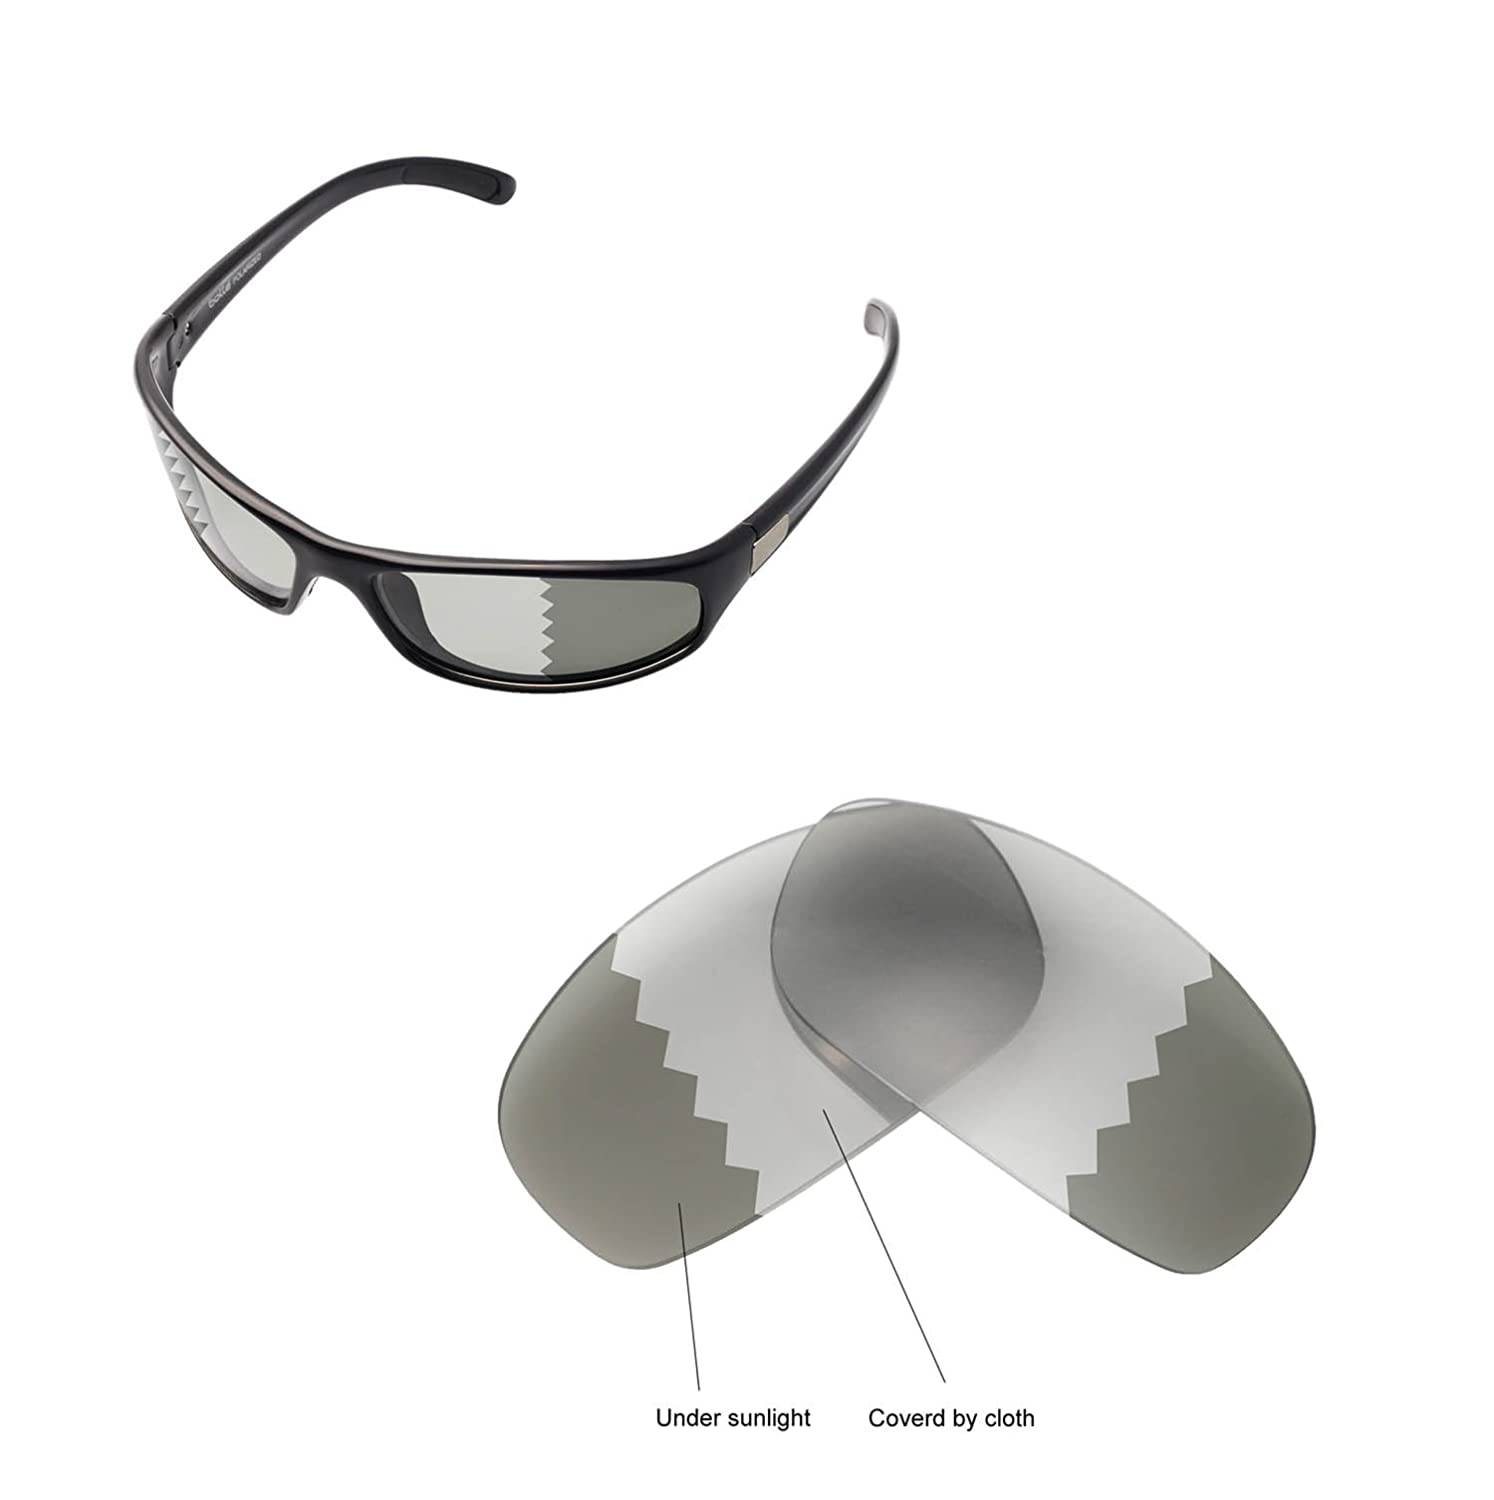 53db045f2c Walleva Replacement Lenses for Bolle Anaconda Sunglasses - Multiple Options  Available (Transition Photochromic - Polarized)